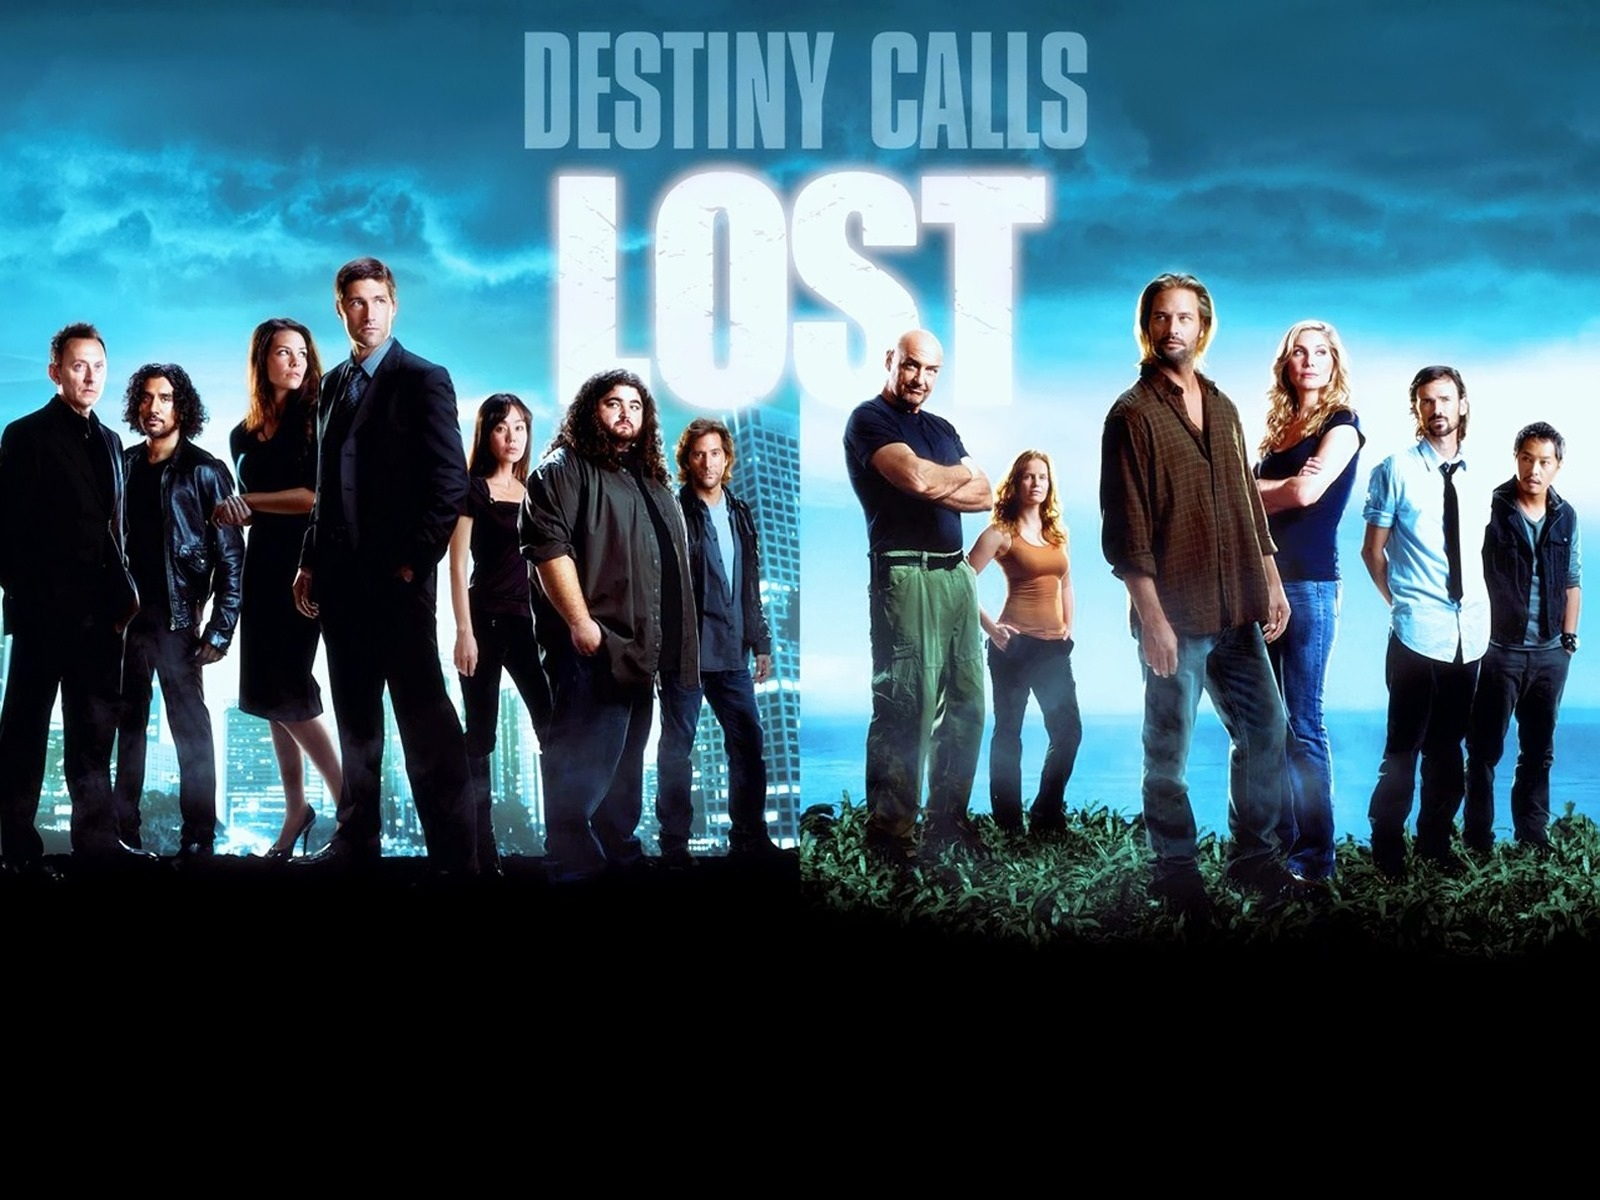 Fondos de pantalla lost temporada 5 1600x1200 hd imagen - Best wallpapers for s5 ...